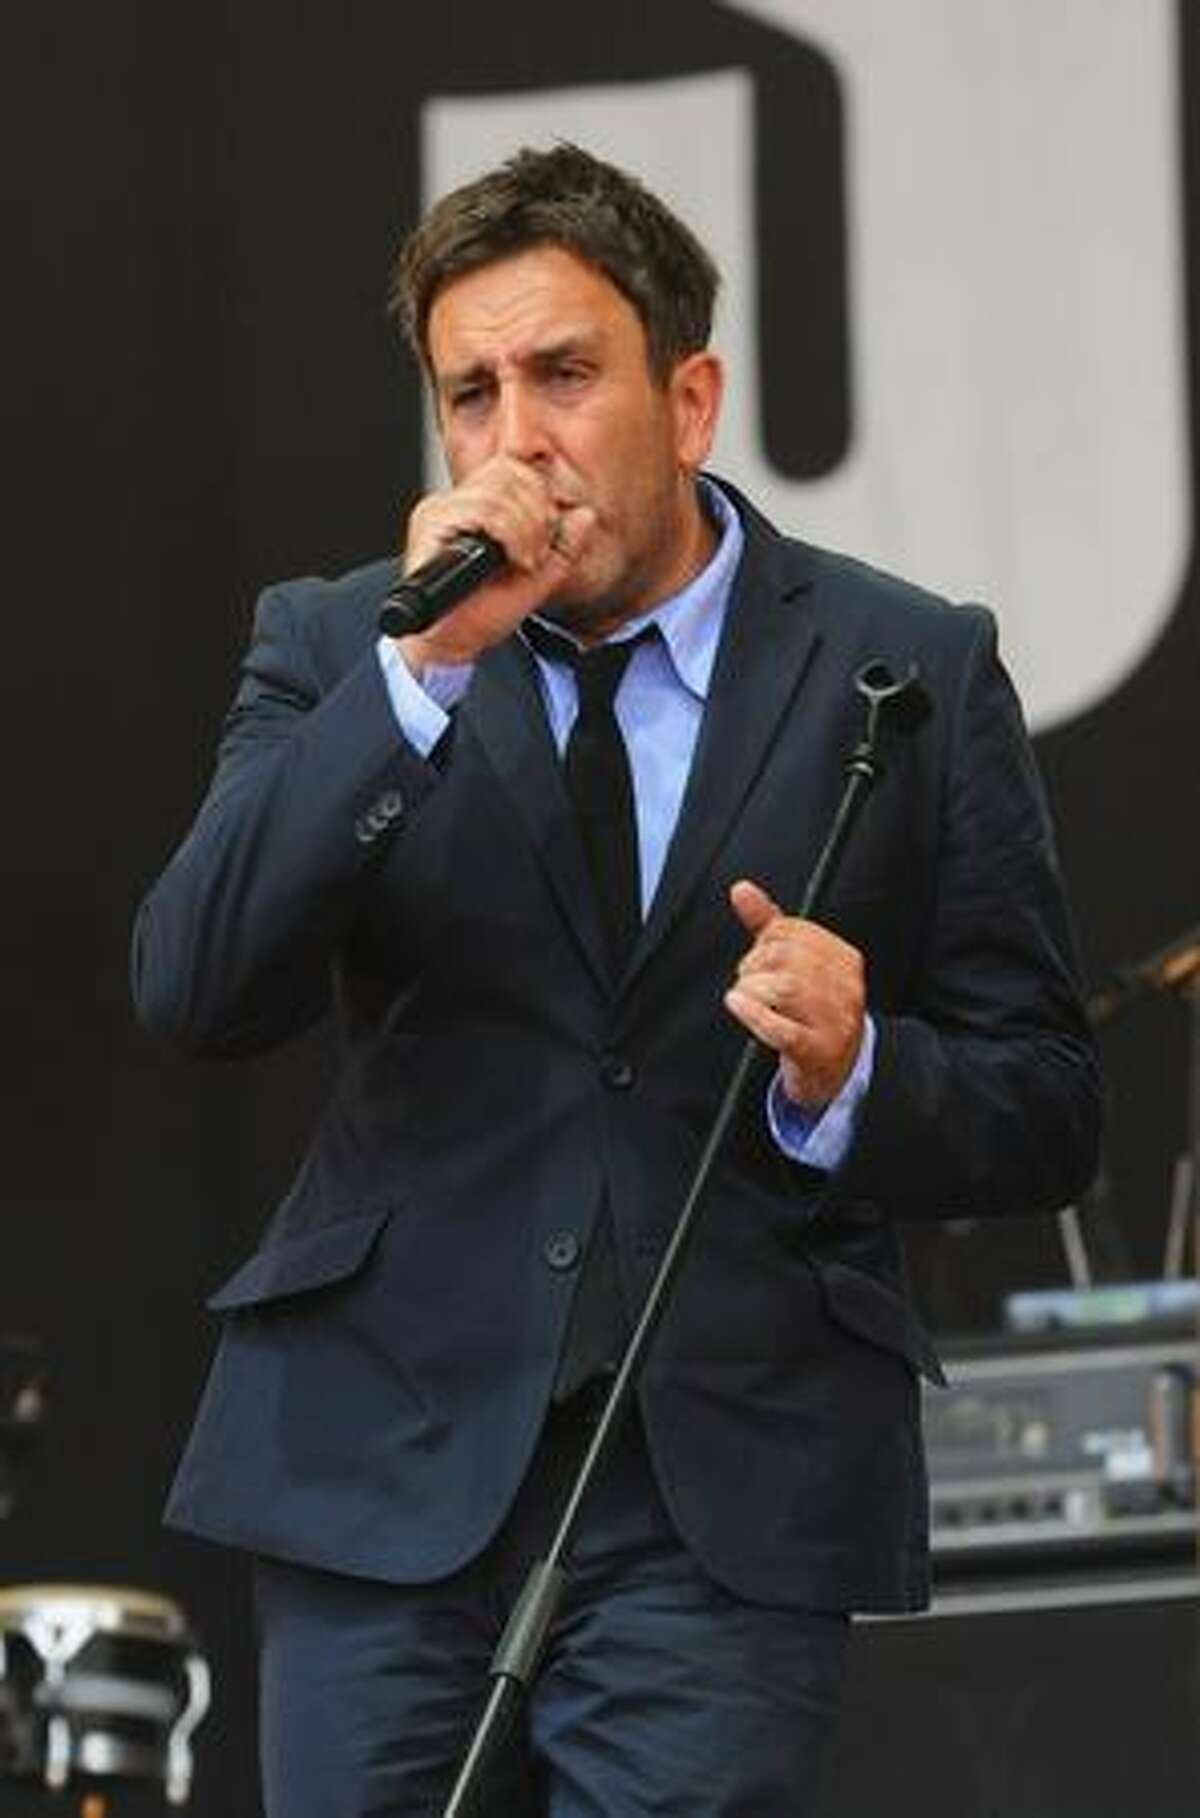 Terry Hall of The Specials performs on the Pyramid Stage during day two of the Glastonbury Festival at Worthy Farm in Pilton in Glastonbury, England.